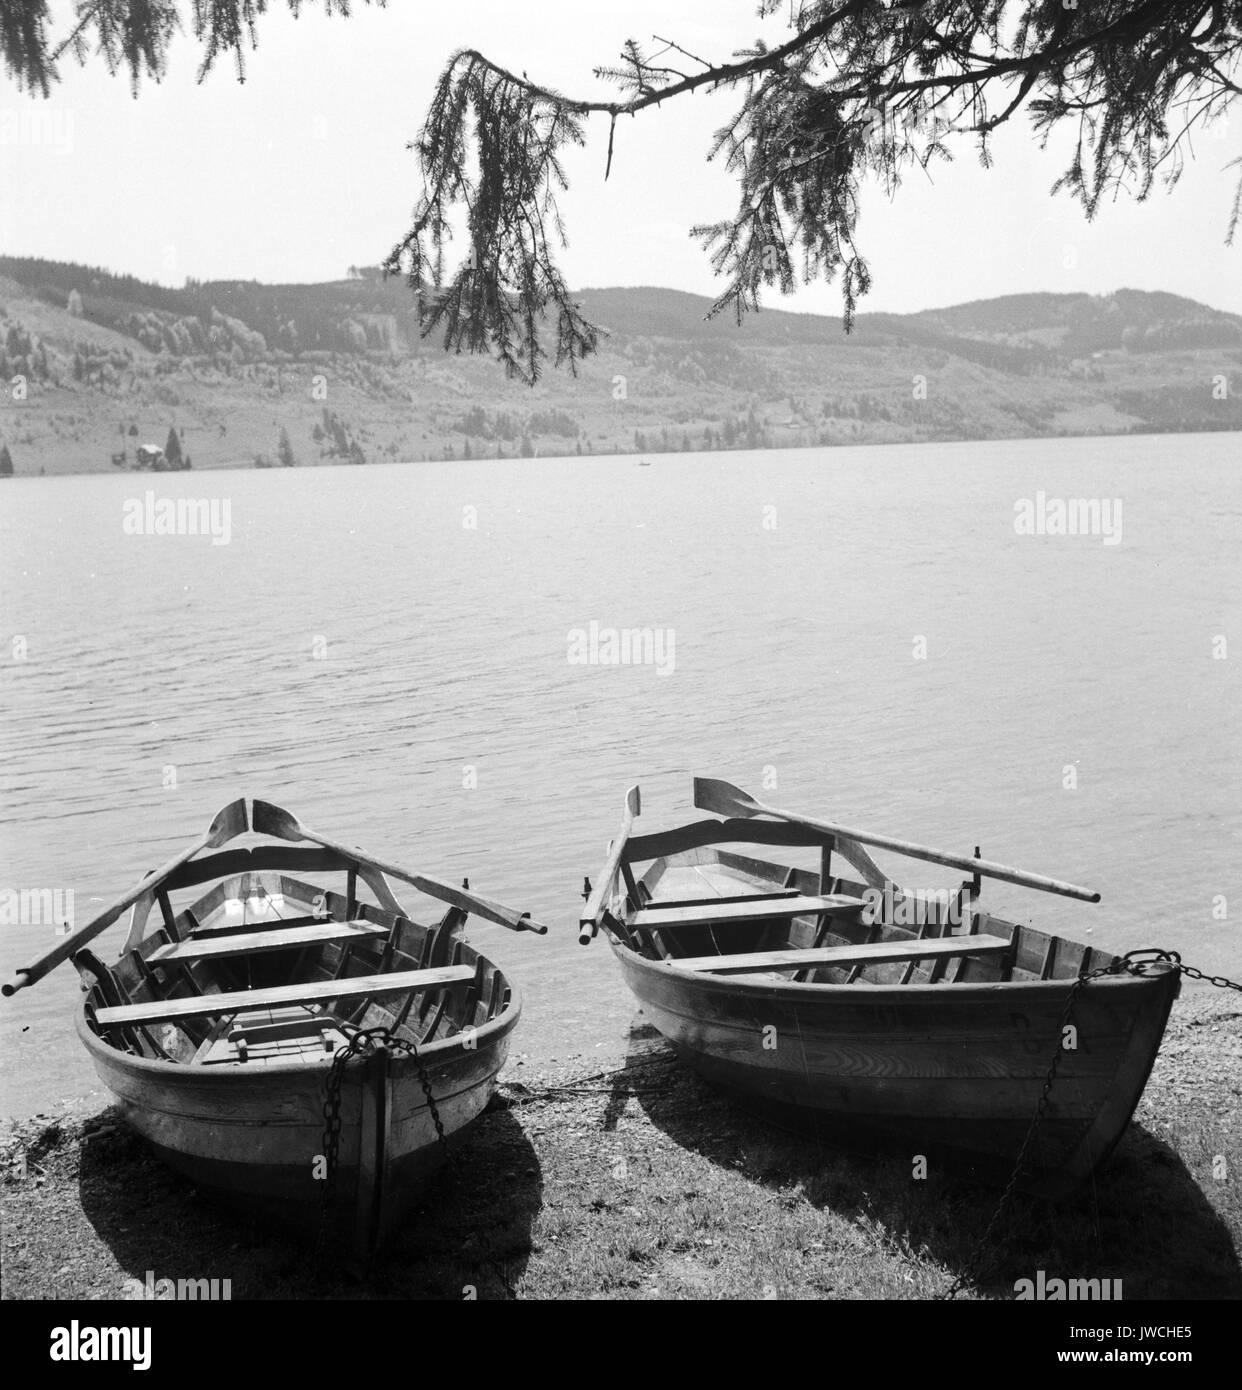 Two wooden boats parked on shoreline by lake. - Stock Image